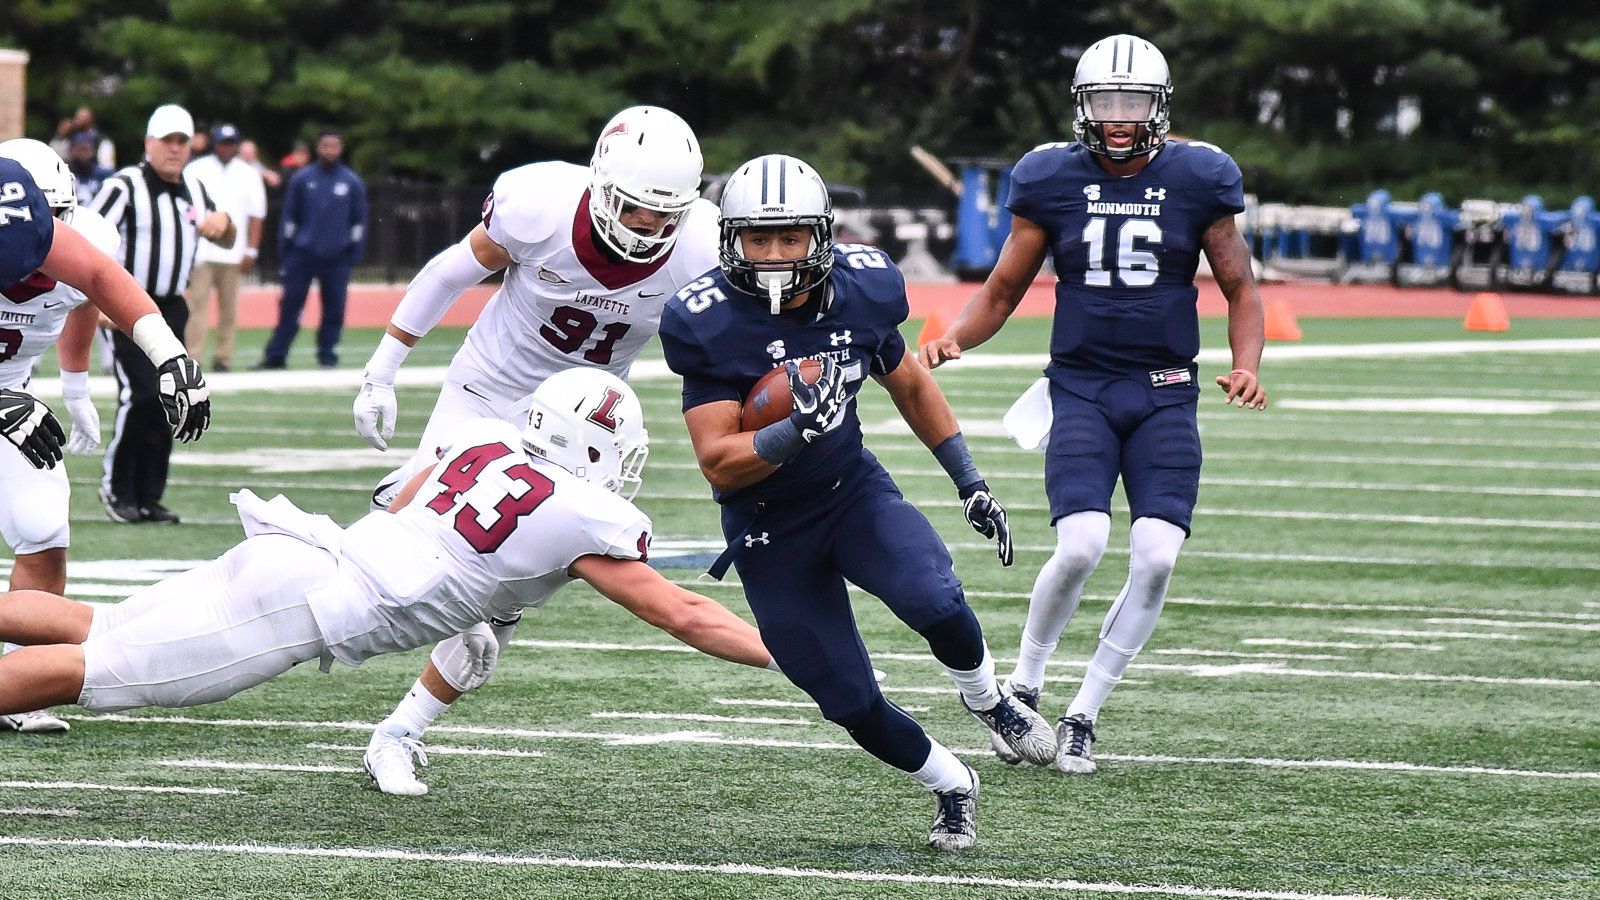 Lehigh At Monmouth Game Preview: Revenge for the First Half Shutout